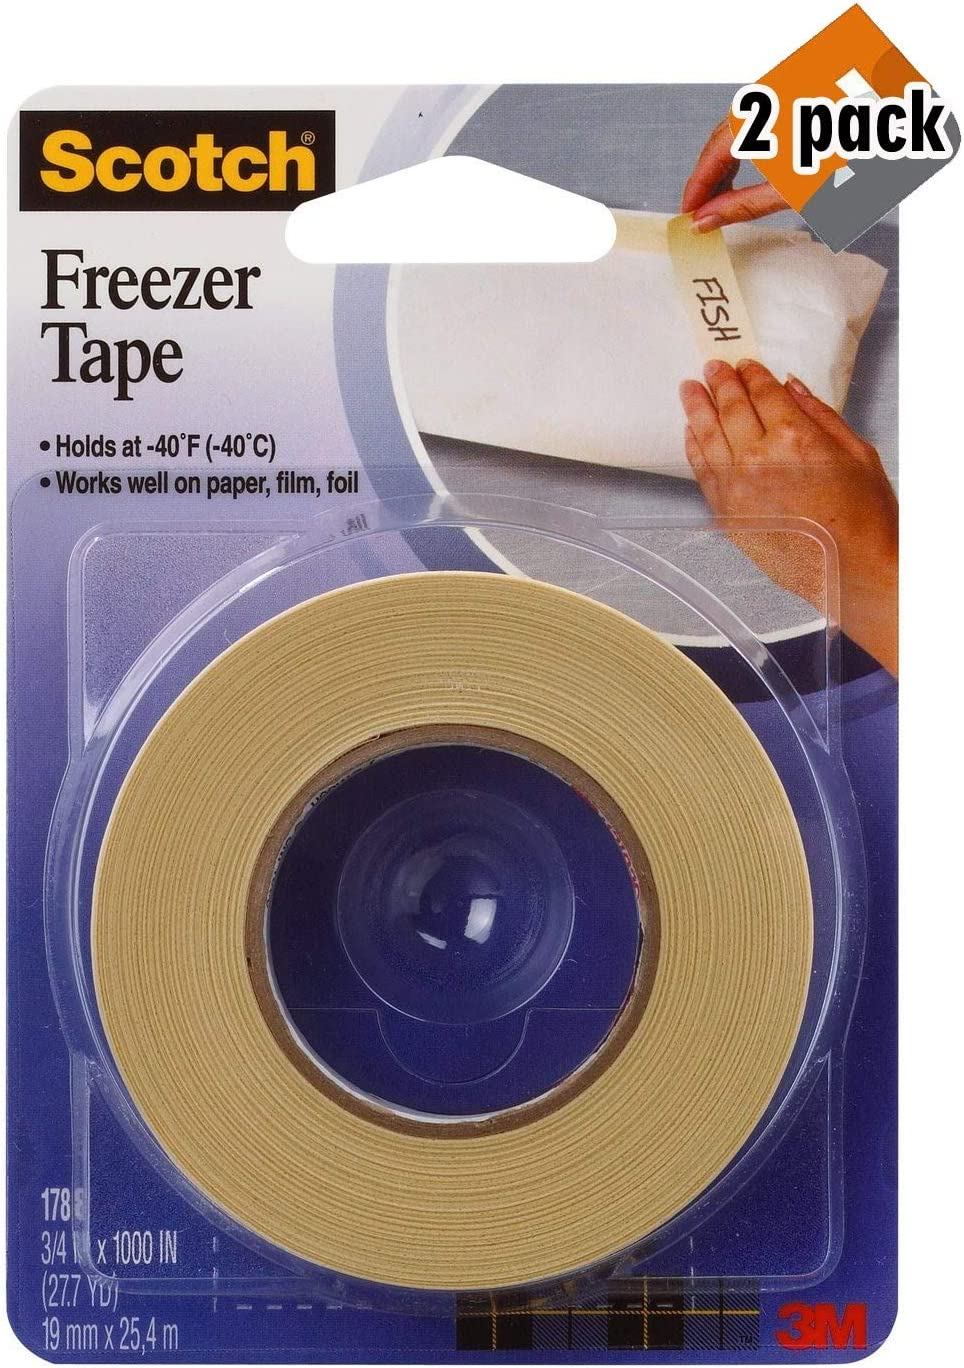 Scotch Freezer Tape, 3/4 x 1000 Inch (178) 2 Pack